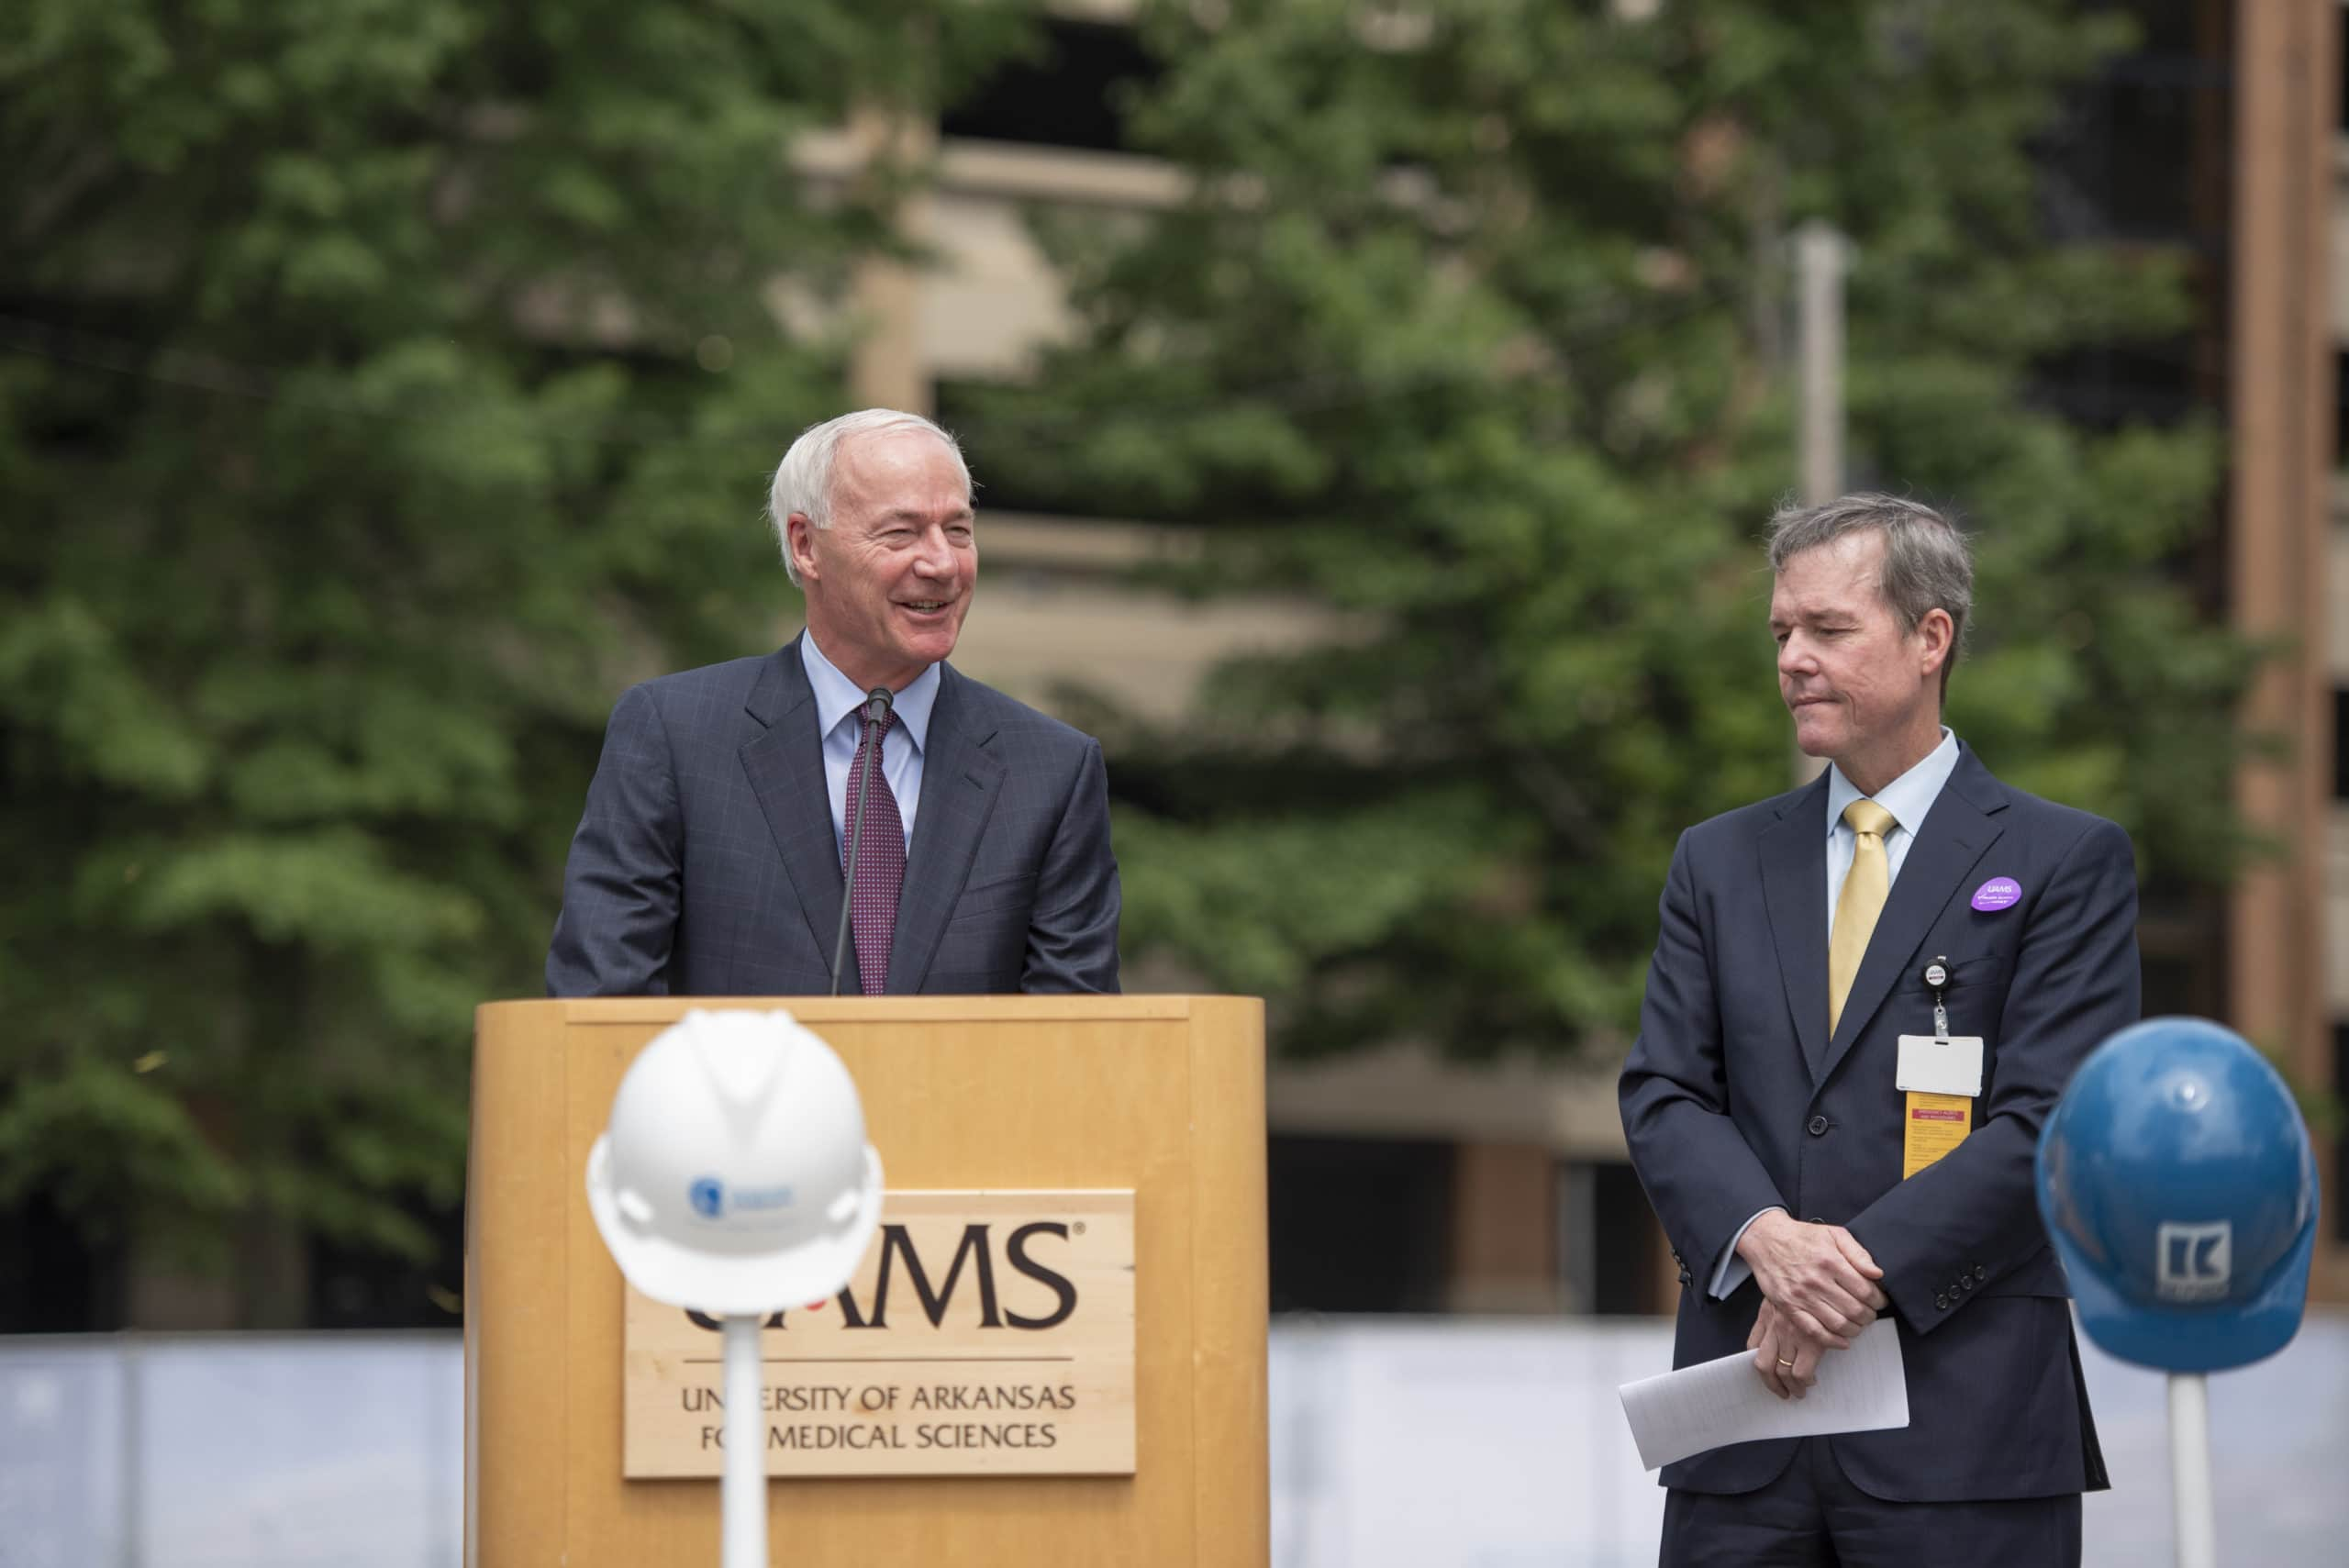 Gov. Asa Hutchinson speaks Tuesday at the groundbreaking ceremony for the UAMS Radiation Oncology Center as UAMS Chancellor Cam Patterson, M.D., MBA, looks on. The expanded Radiation Oncology Center will house Arkansas' first Proton Center, a partnership between UAMS, Baptist Health, Arkansas Children's and Proton International.